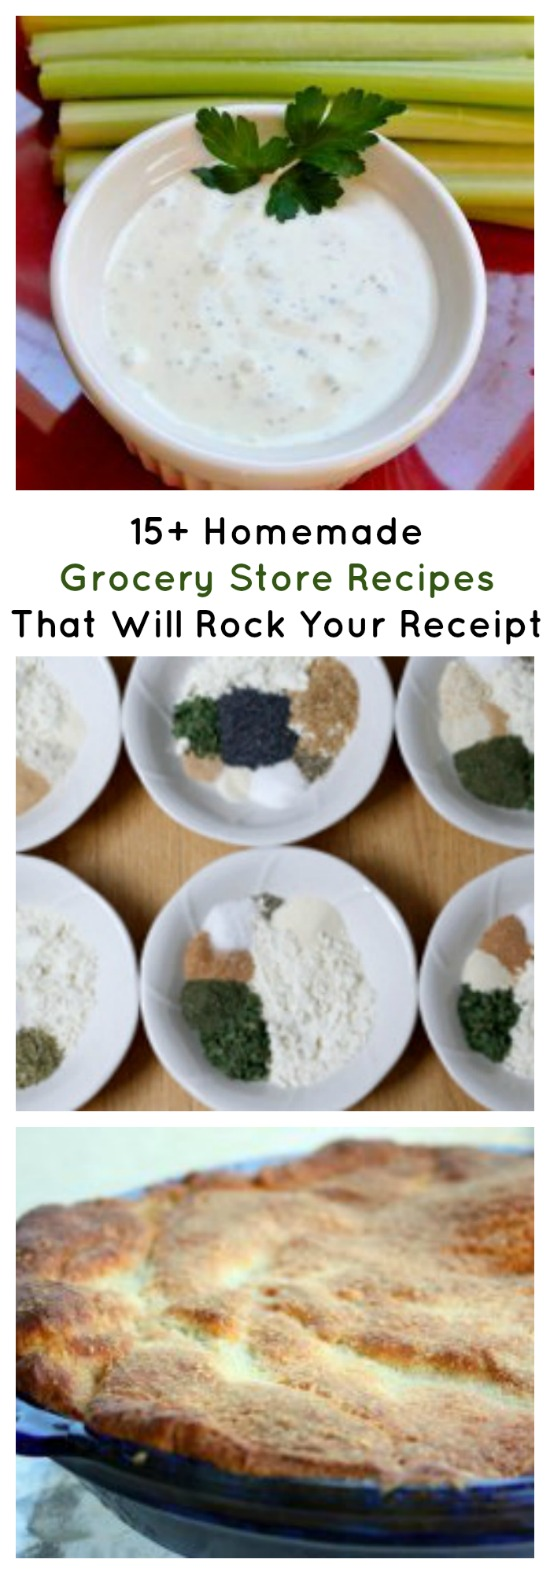 GroceryStoreRecipes